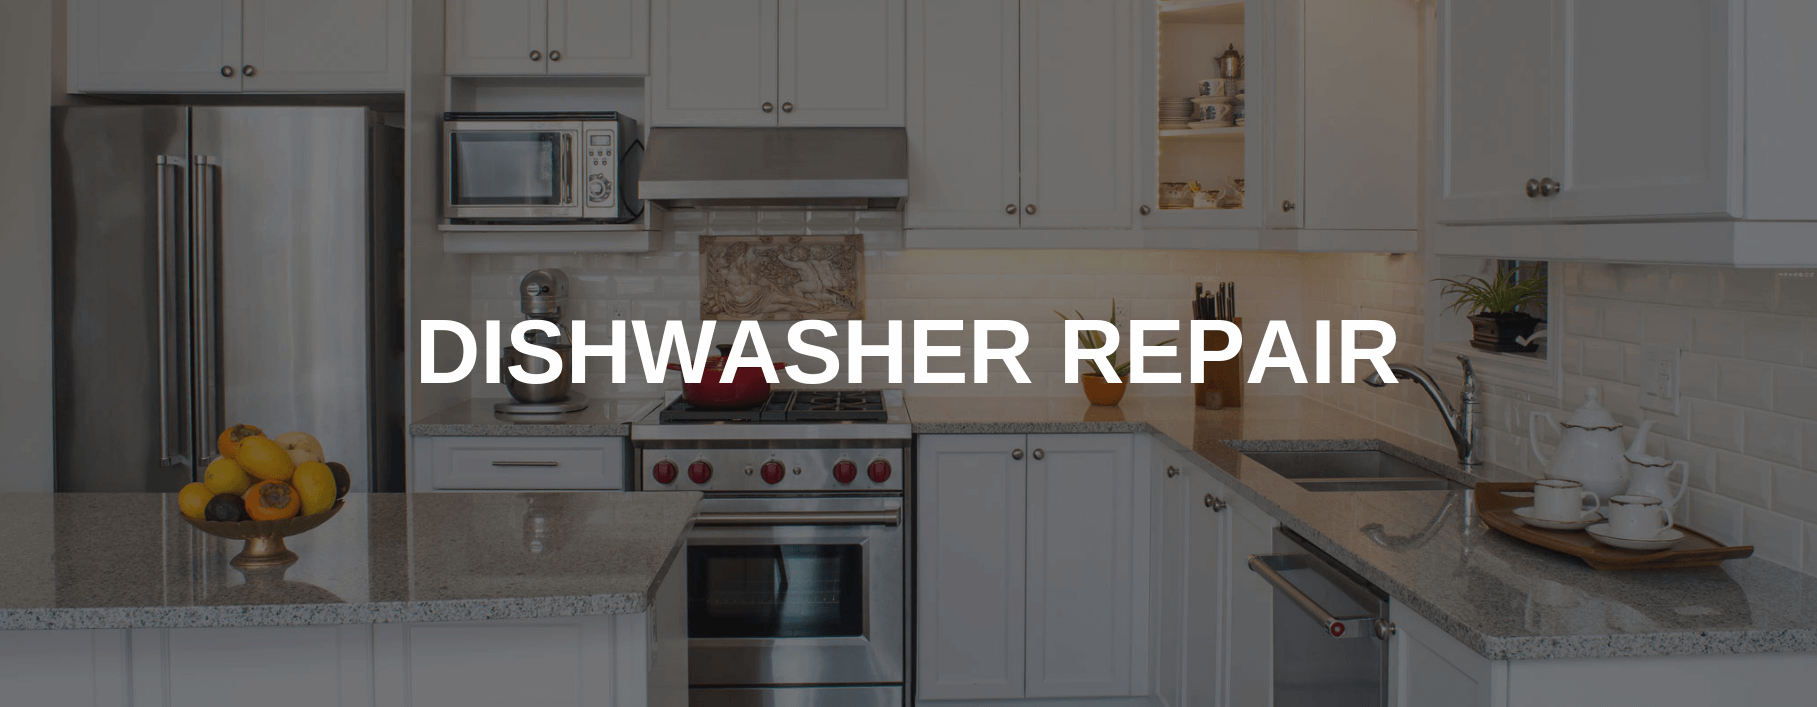 dishwasher repair union